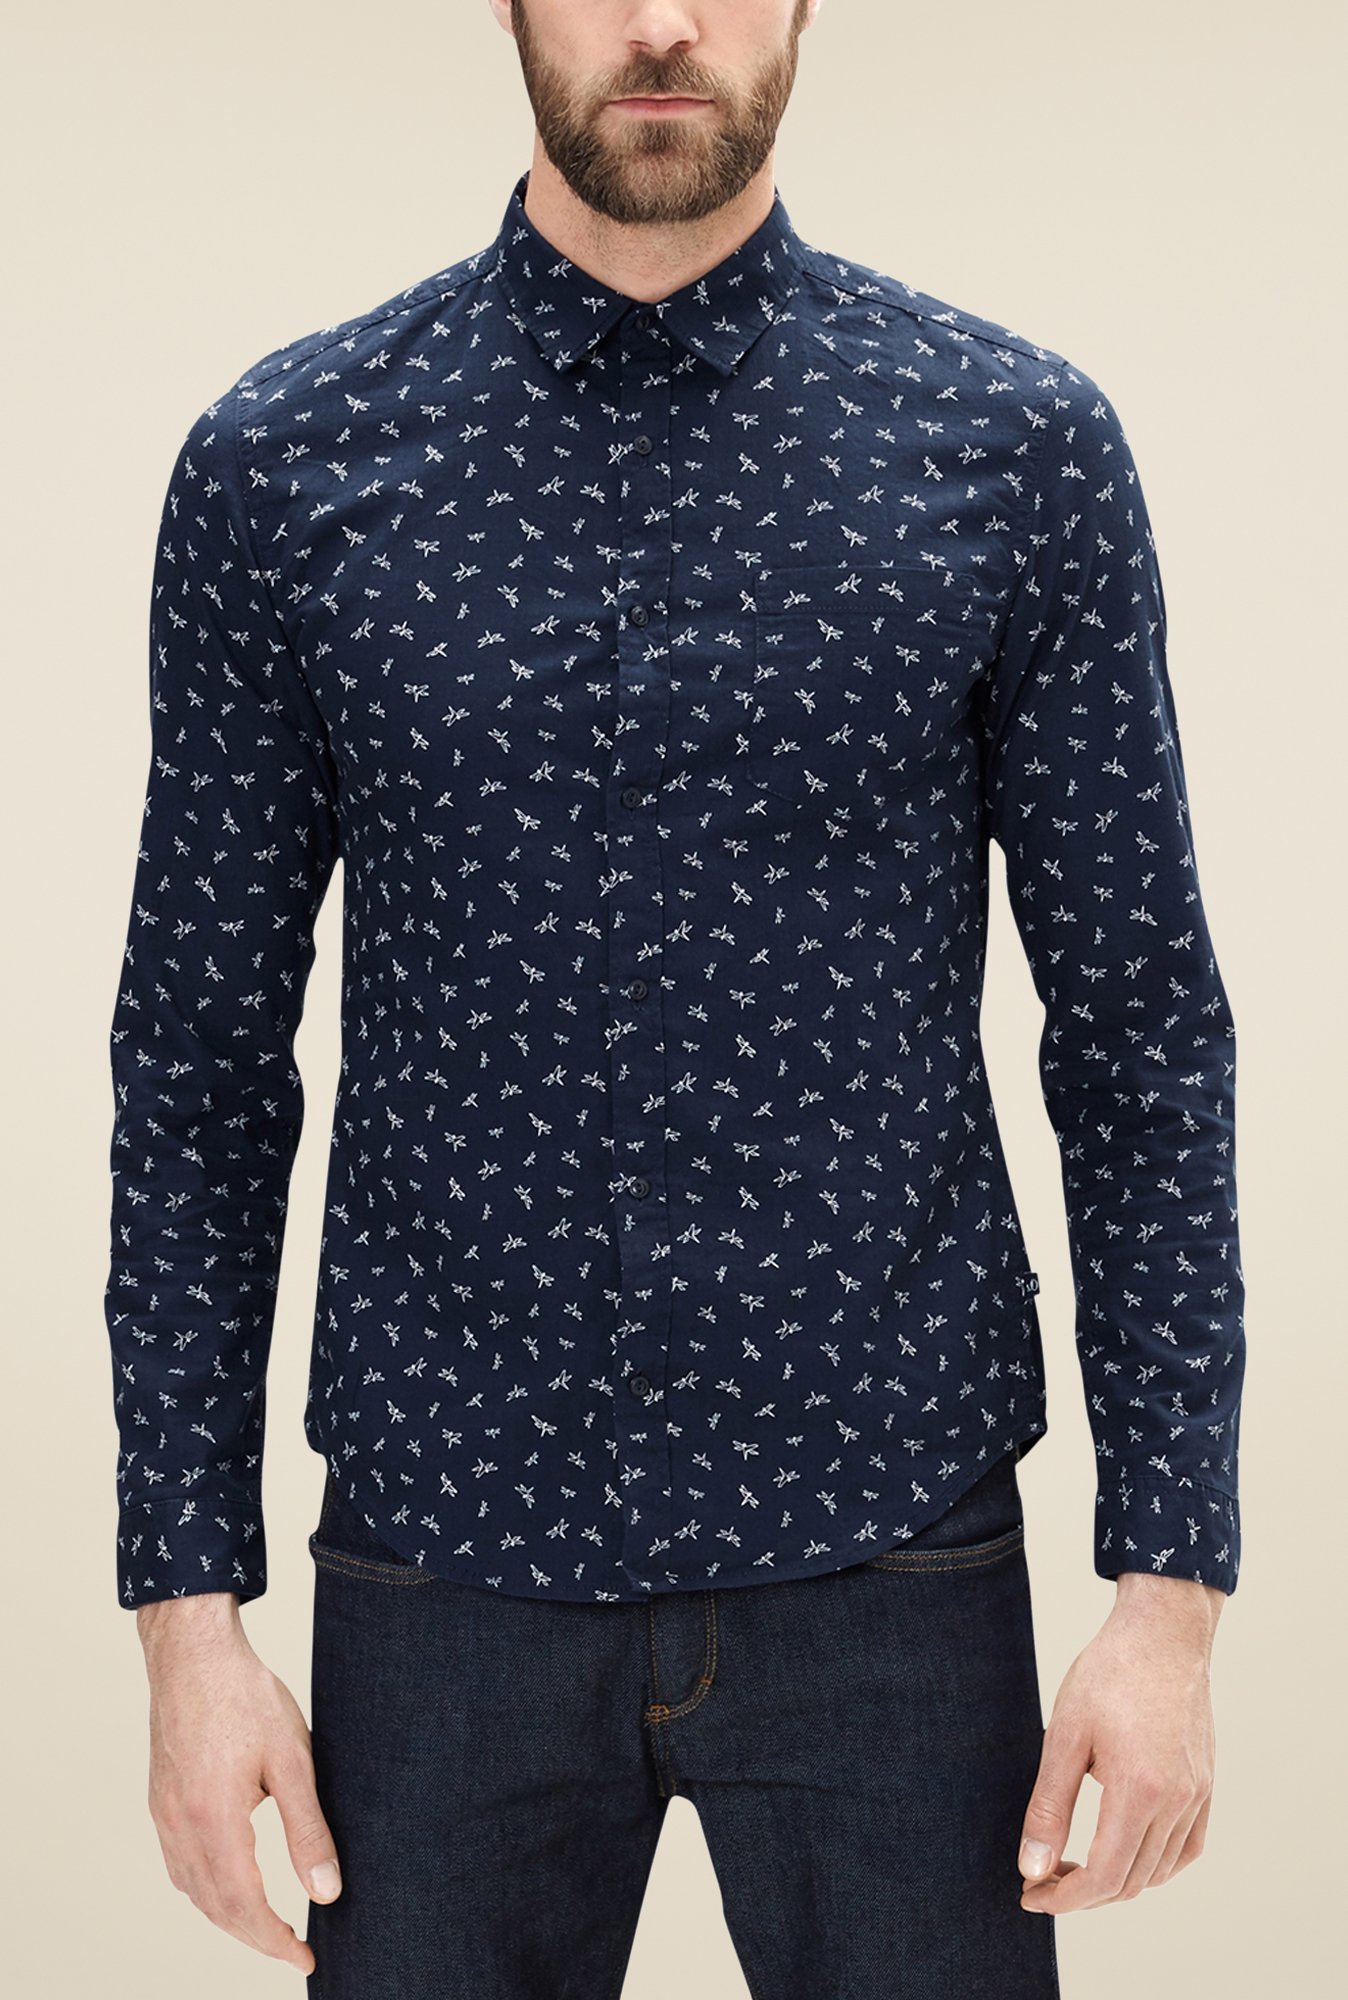 s.Oliver Navy Printed Shirt